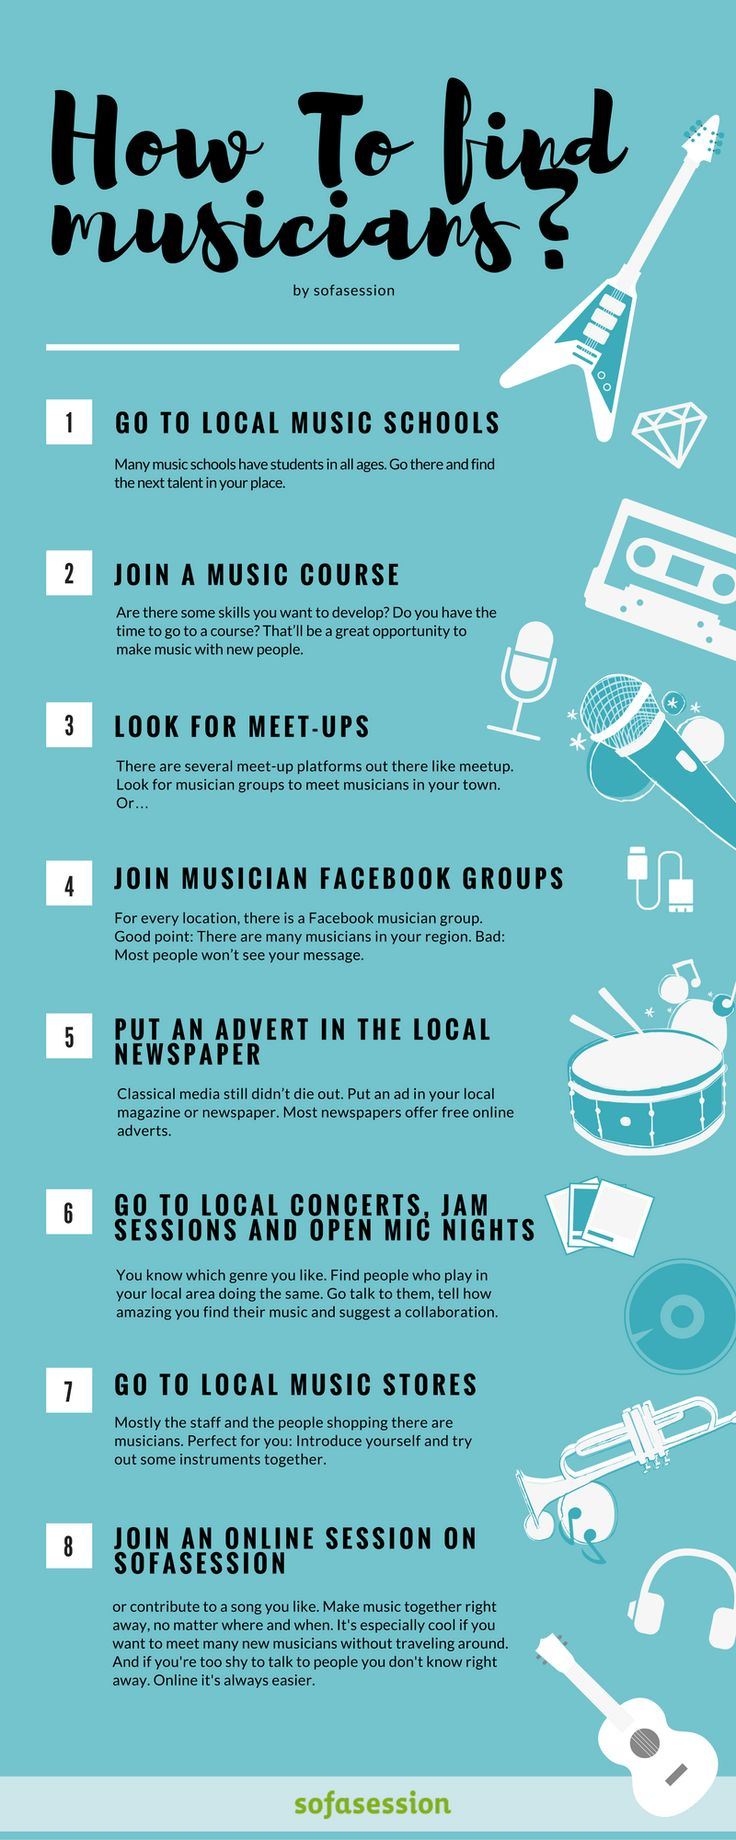 We all have been there: You are looking for a new drummer/guitarist/singer. Or you want to start a new band. You need somebody playing the trombone. Or somebody who shares your passion for ACDC/Lady Gaga/Radiohead. How can you find musicians? This graphic shows you :) If you want more, read on here: http://blog.sofasession.com/how-can-you-find-musicians/